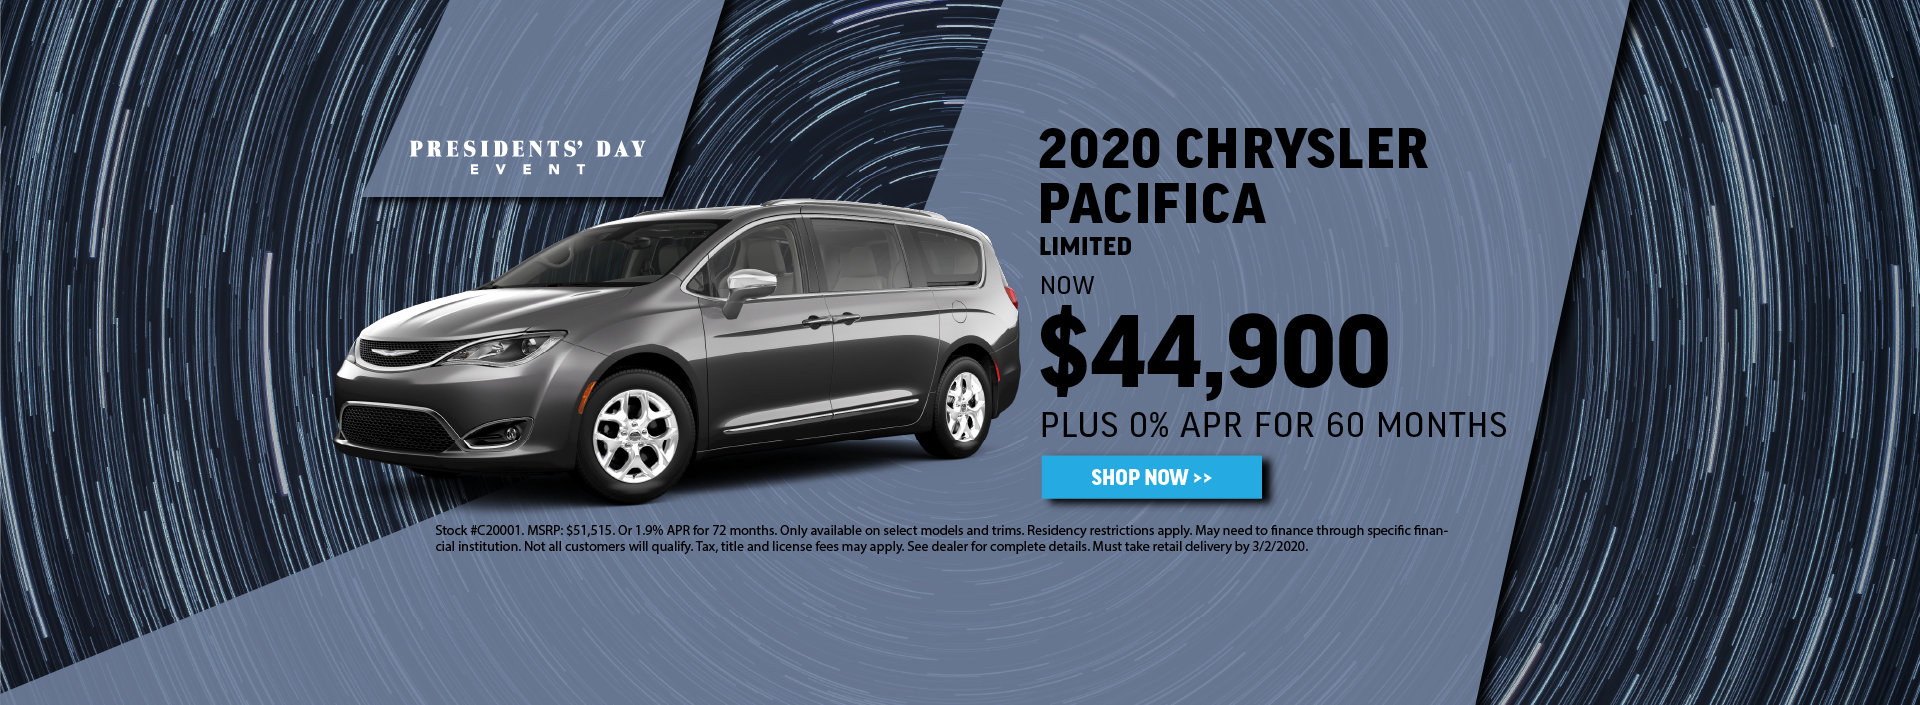 2020 Chrysler Pacifica Offer